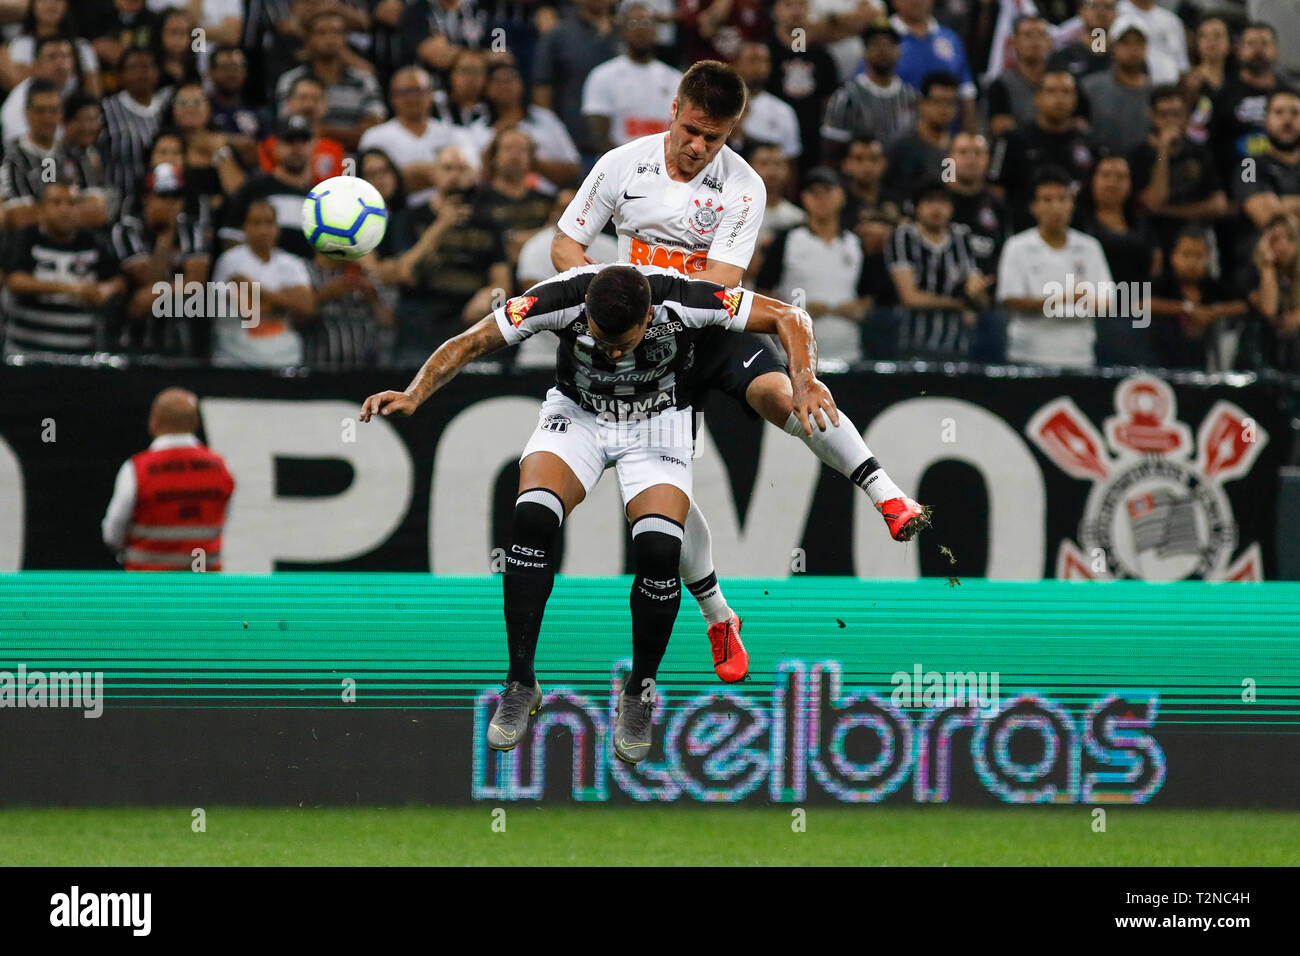 Sao Paulo Sp 03 04 2019 Corinthians X Ceara Ramiro During The Match Between Corinthians And Ceara Held At The Corinthians Arena East Zone Of Sao Paulo The Match Is Valid For